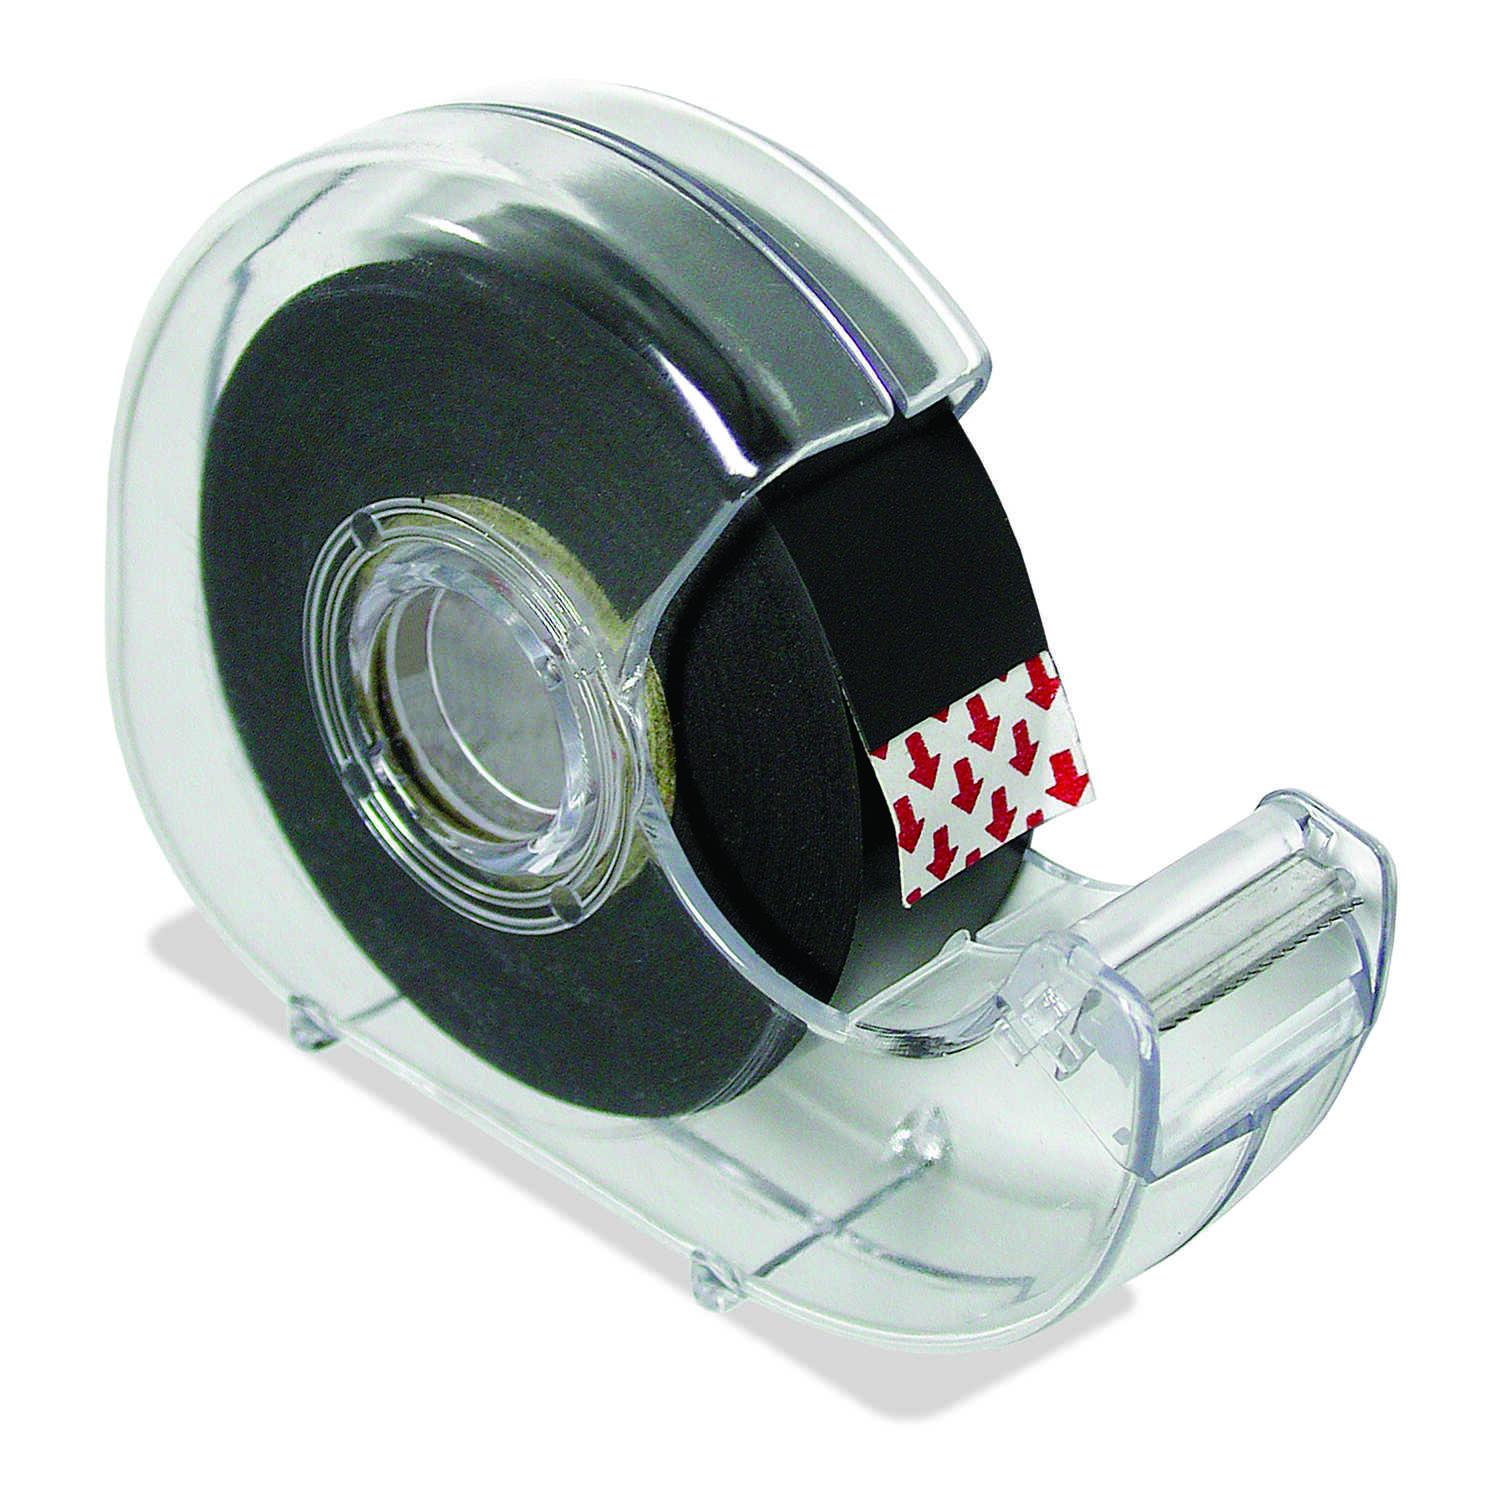 Master Magnetics  312 in. L x .75 in. W The Magnet Source  Mounting Tape  Black